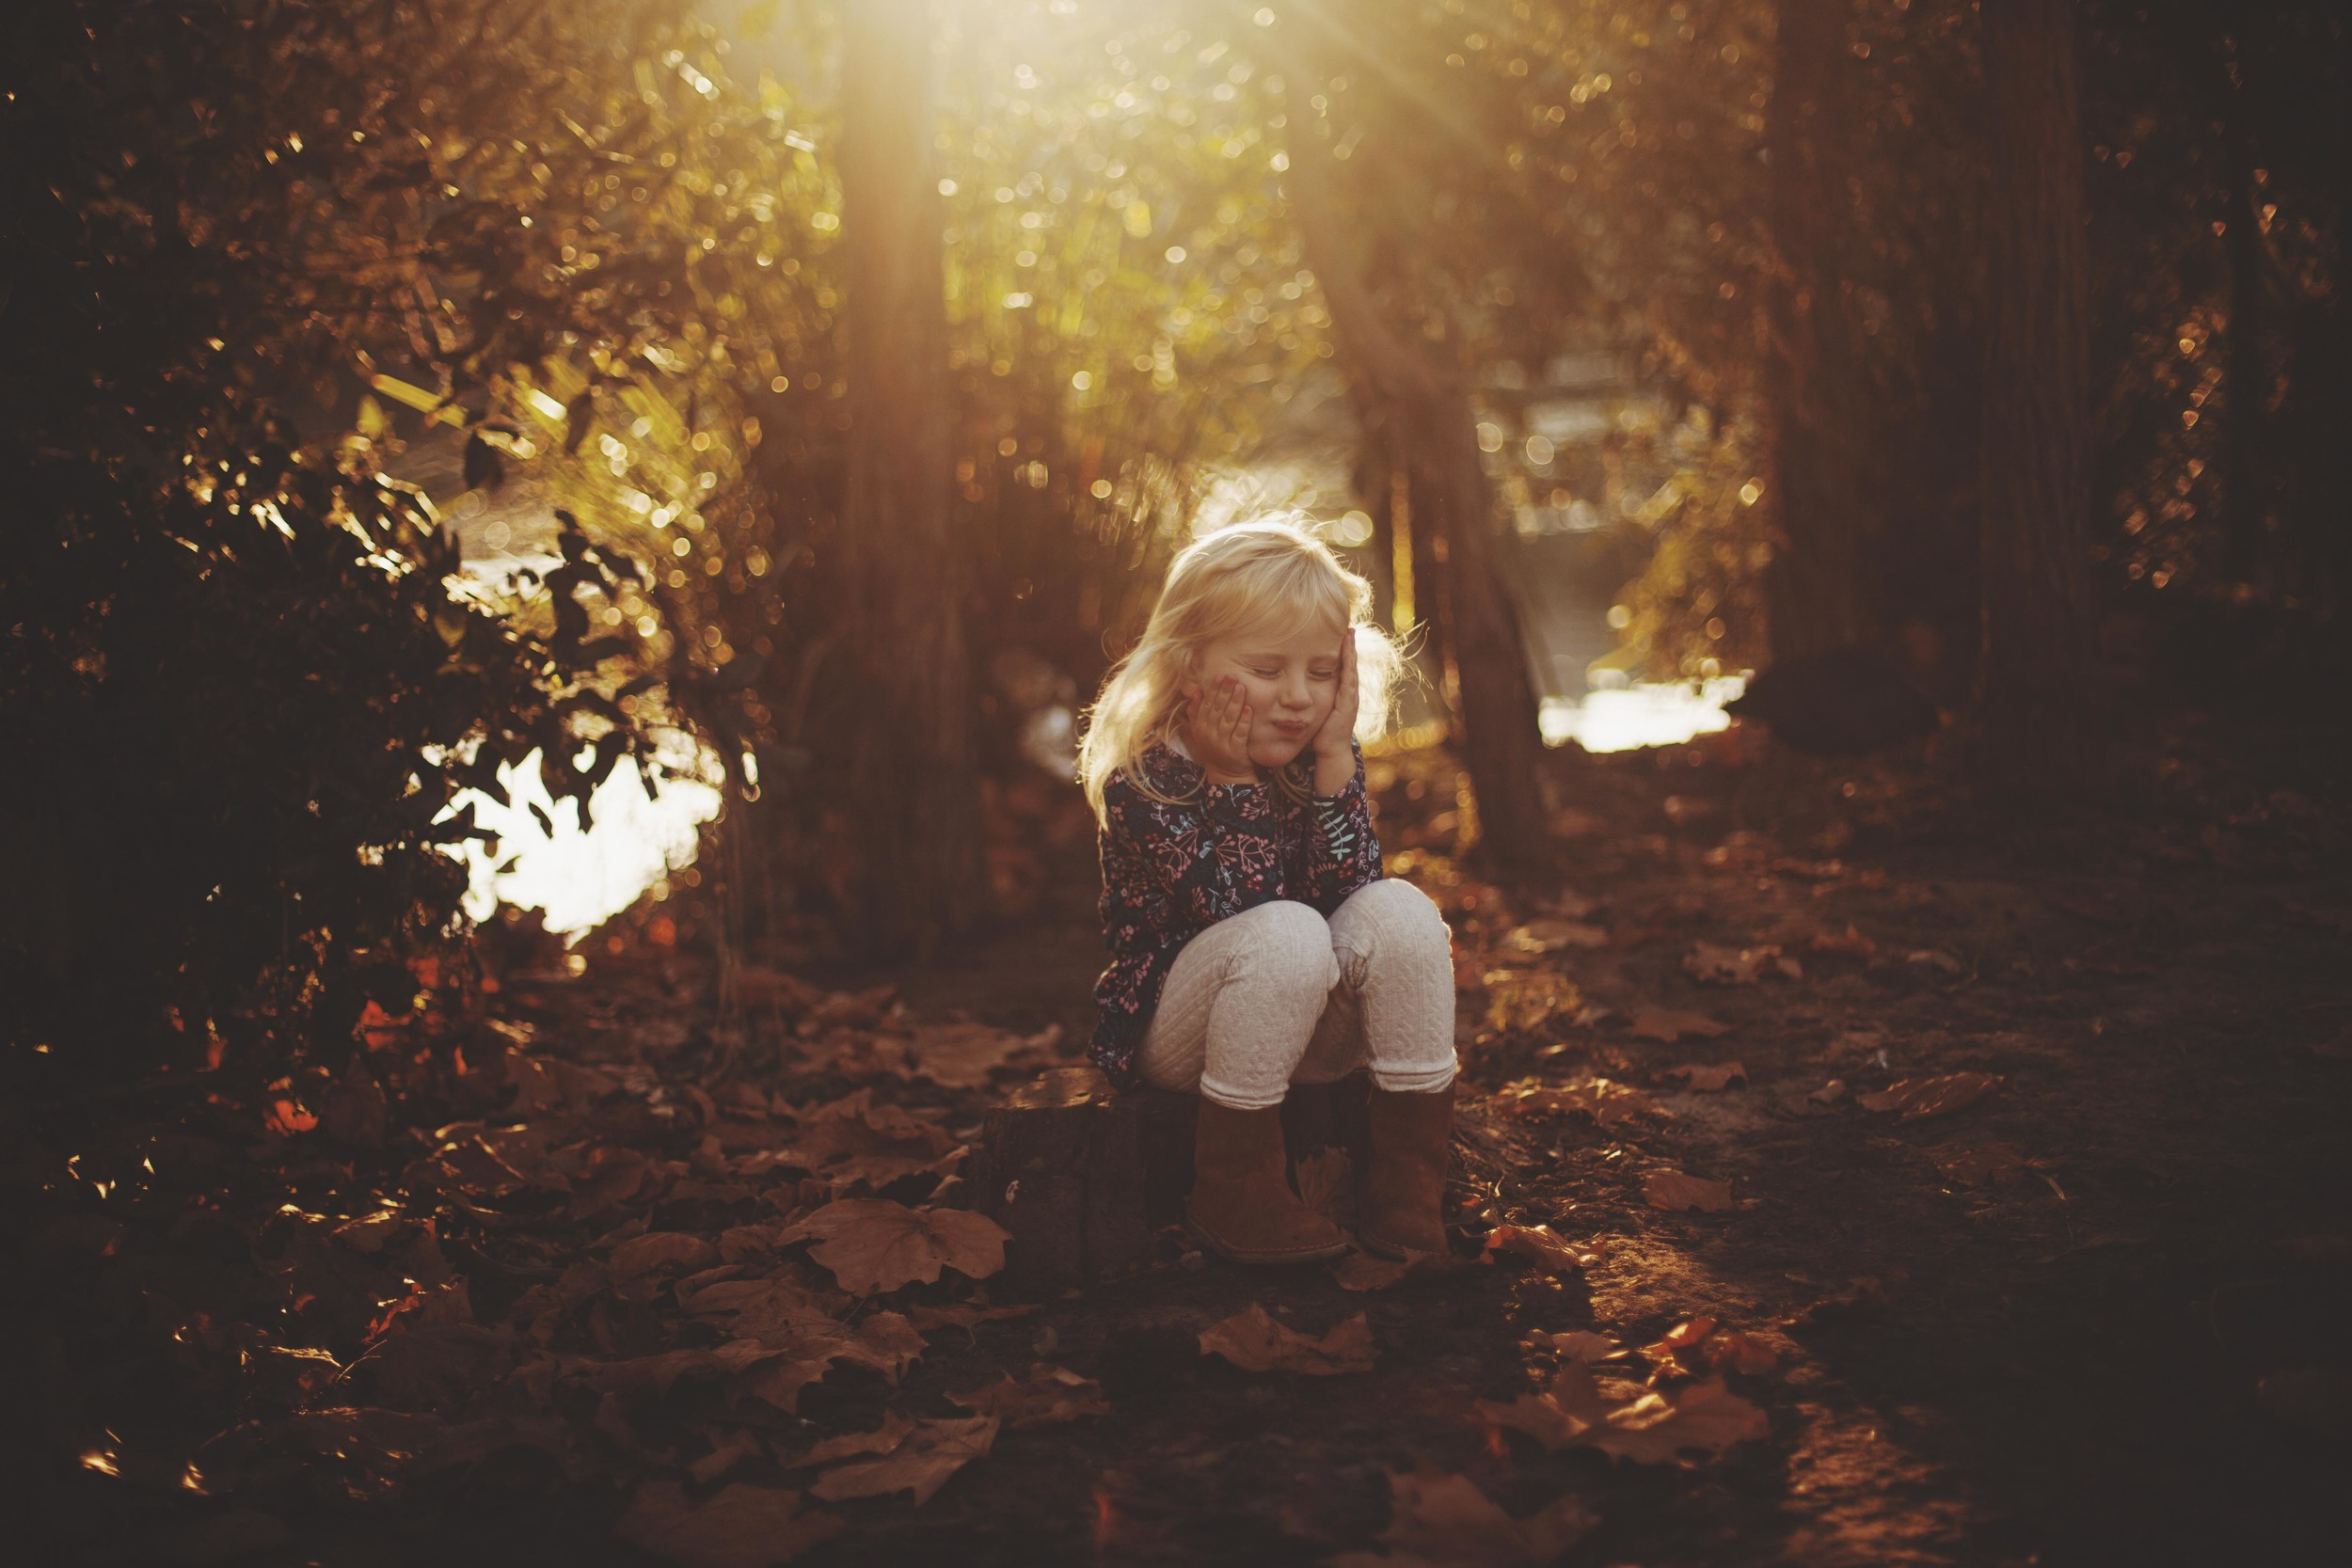 young girl sitting amongst the autumn leaves at sunset